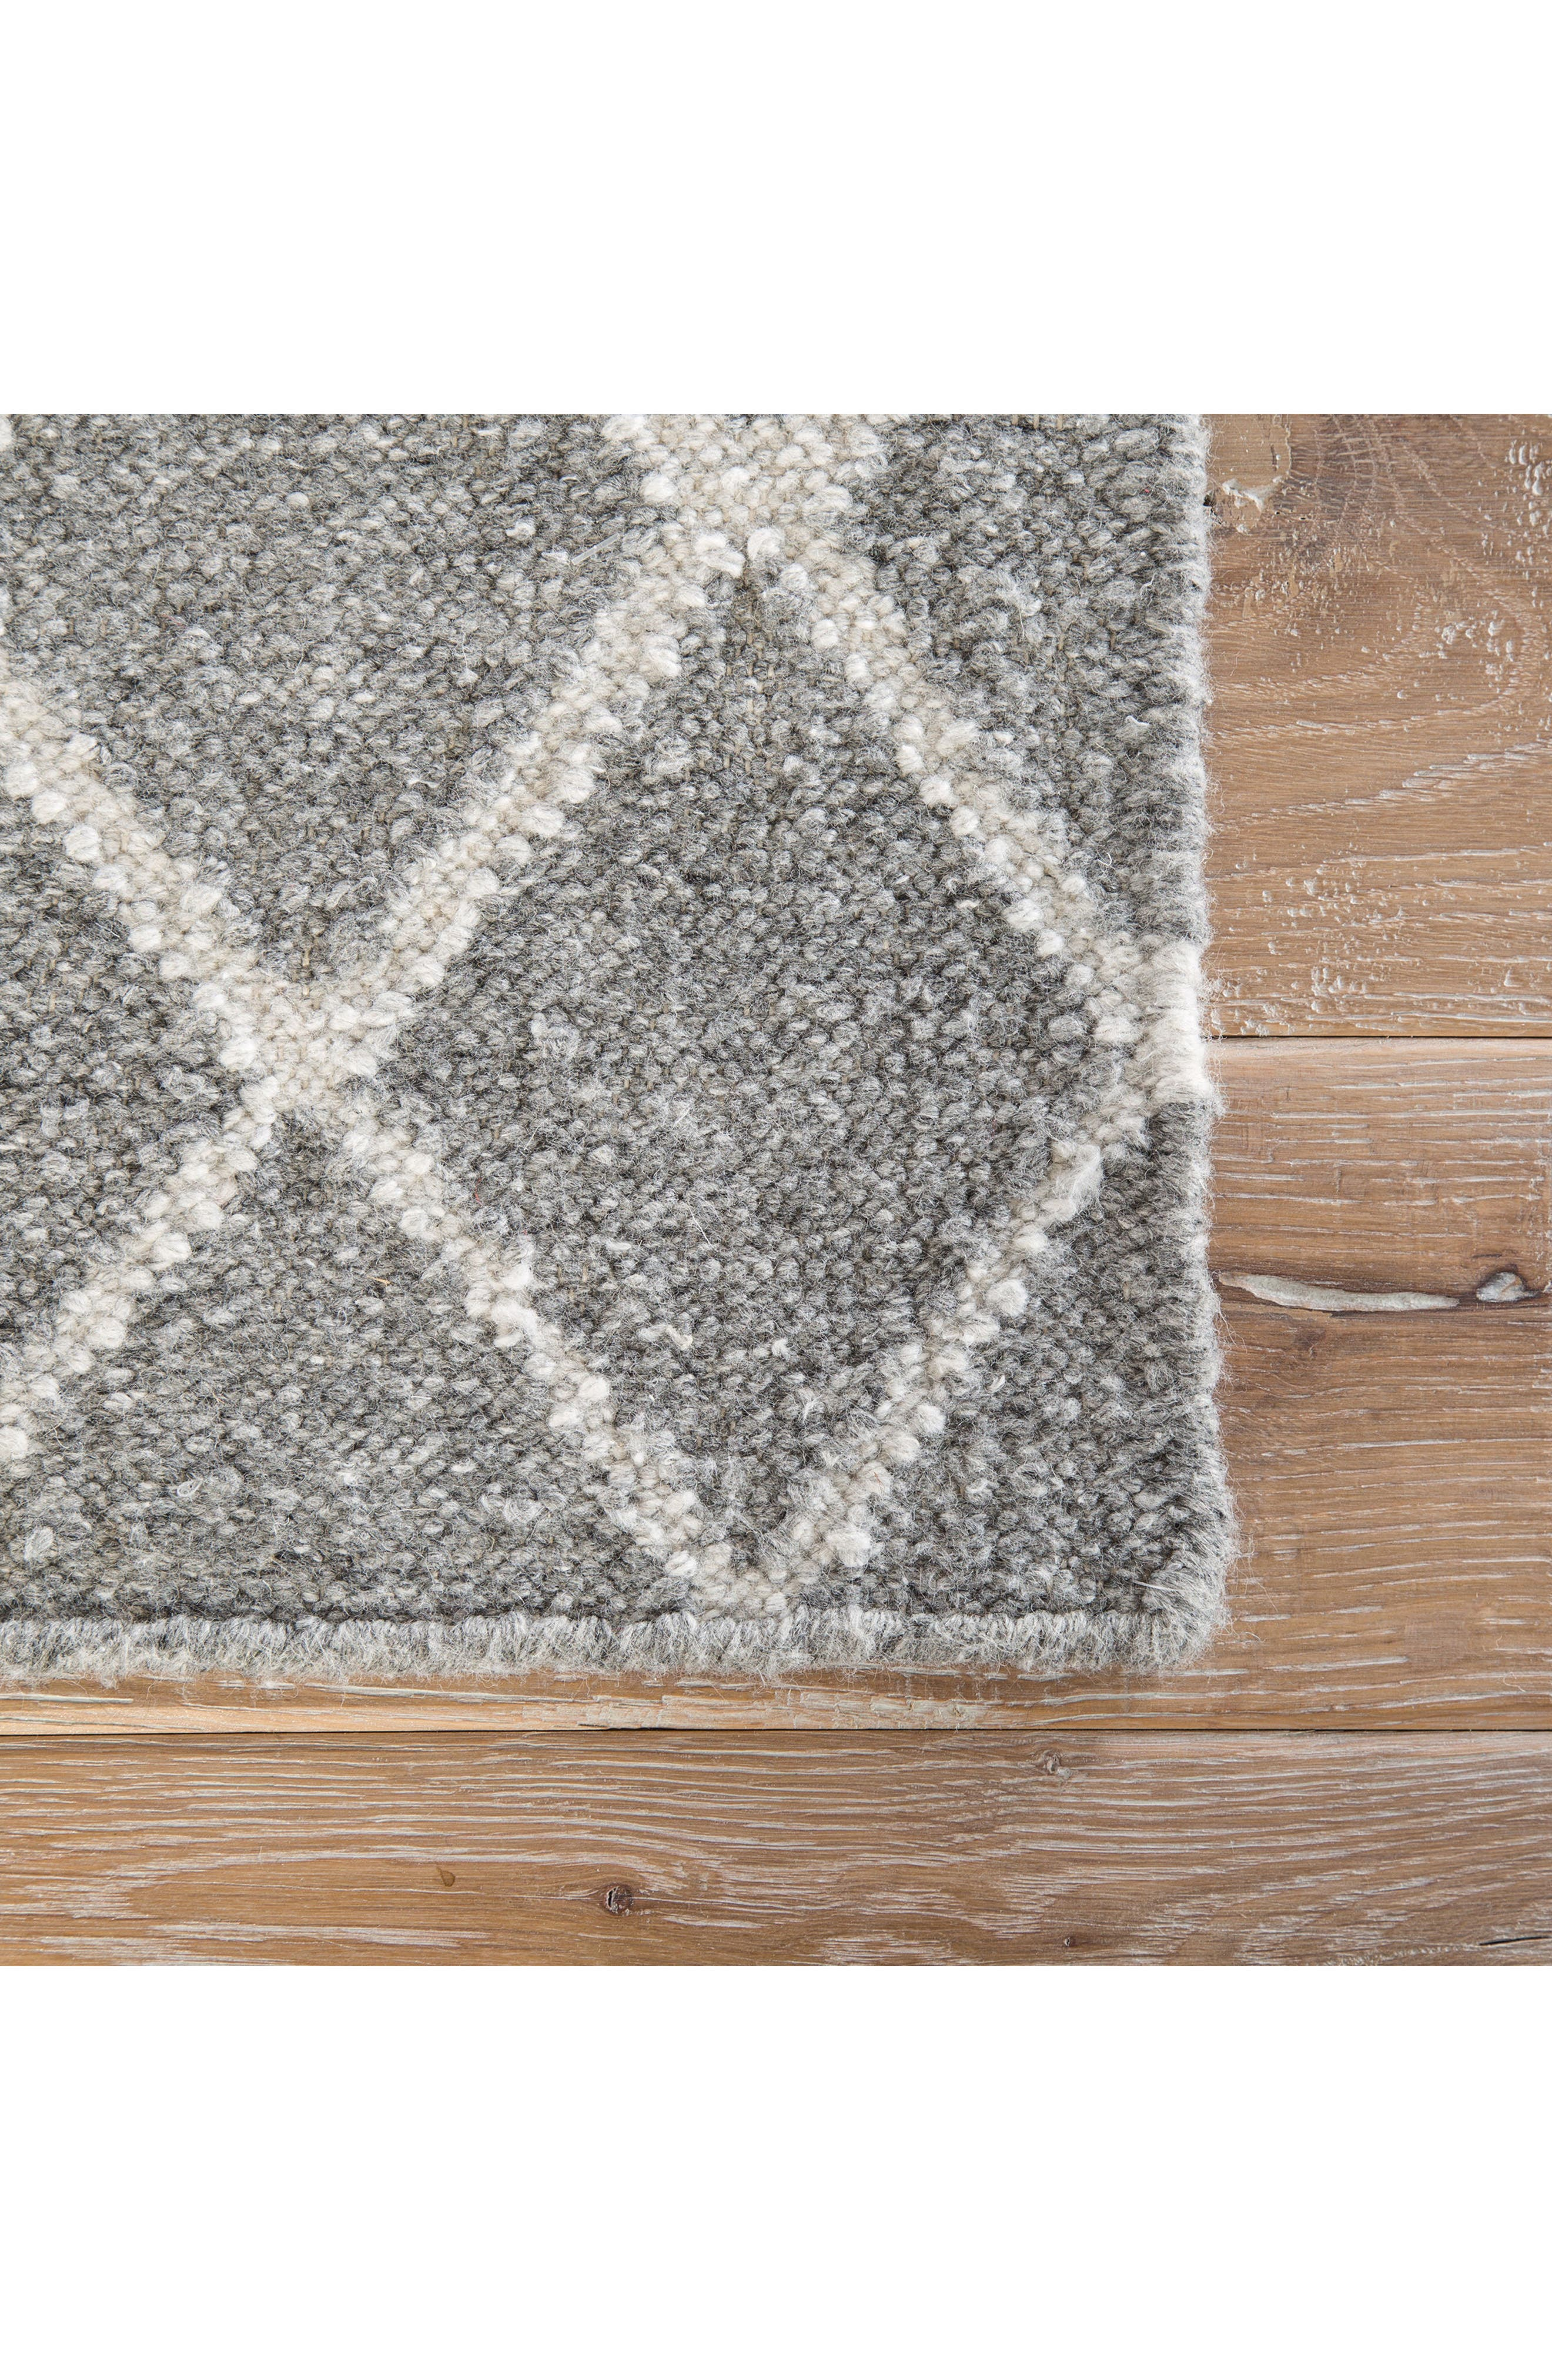 Pyramid Blocks Rug,                             Alternate thumbnail 2, color,                             099